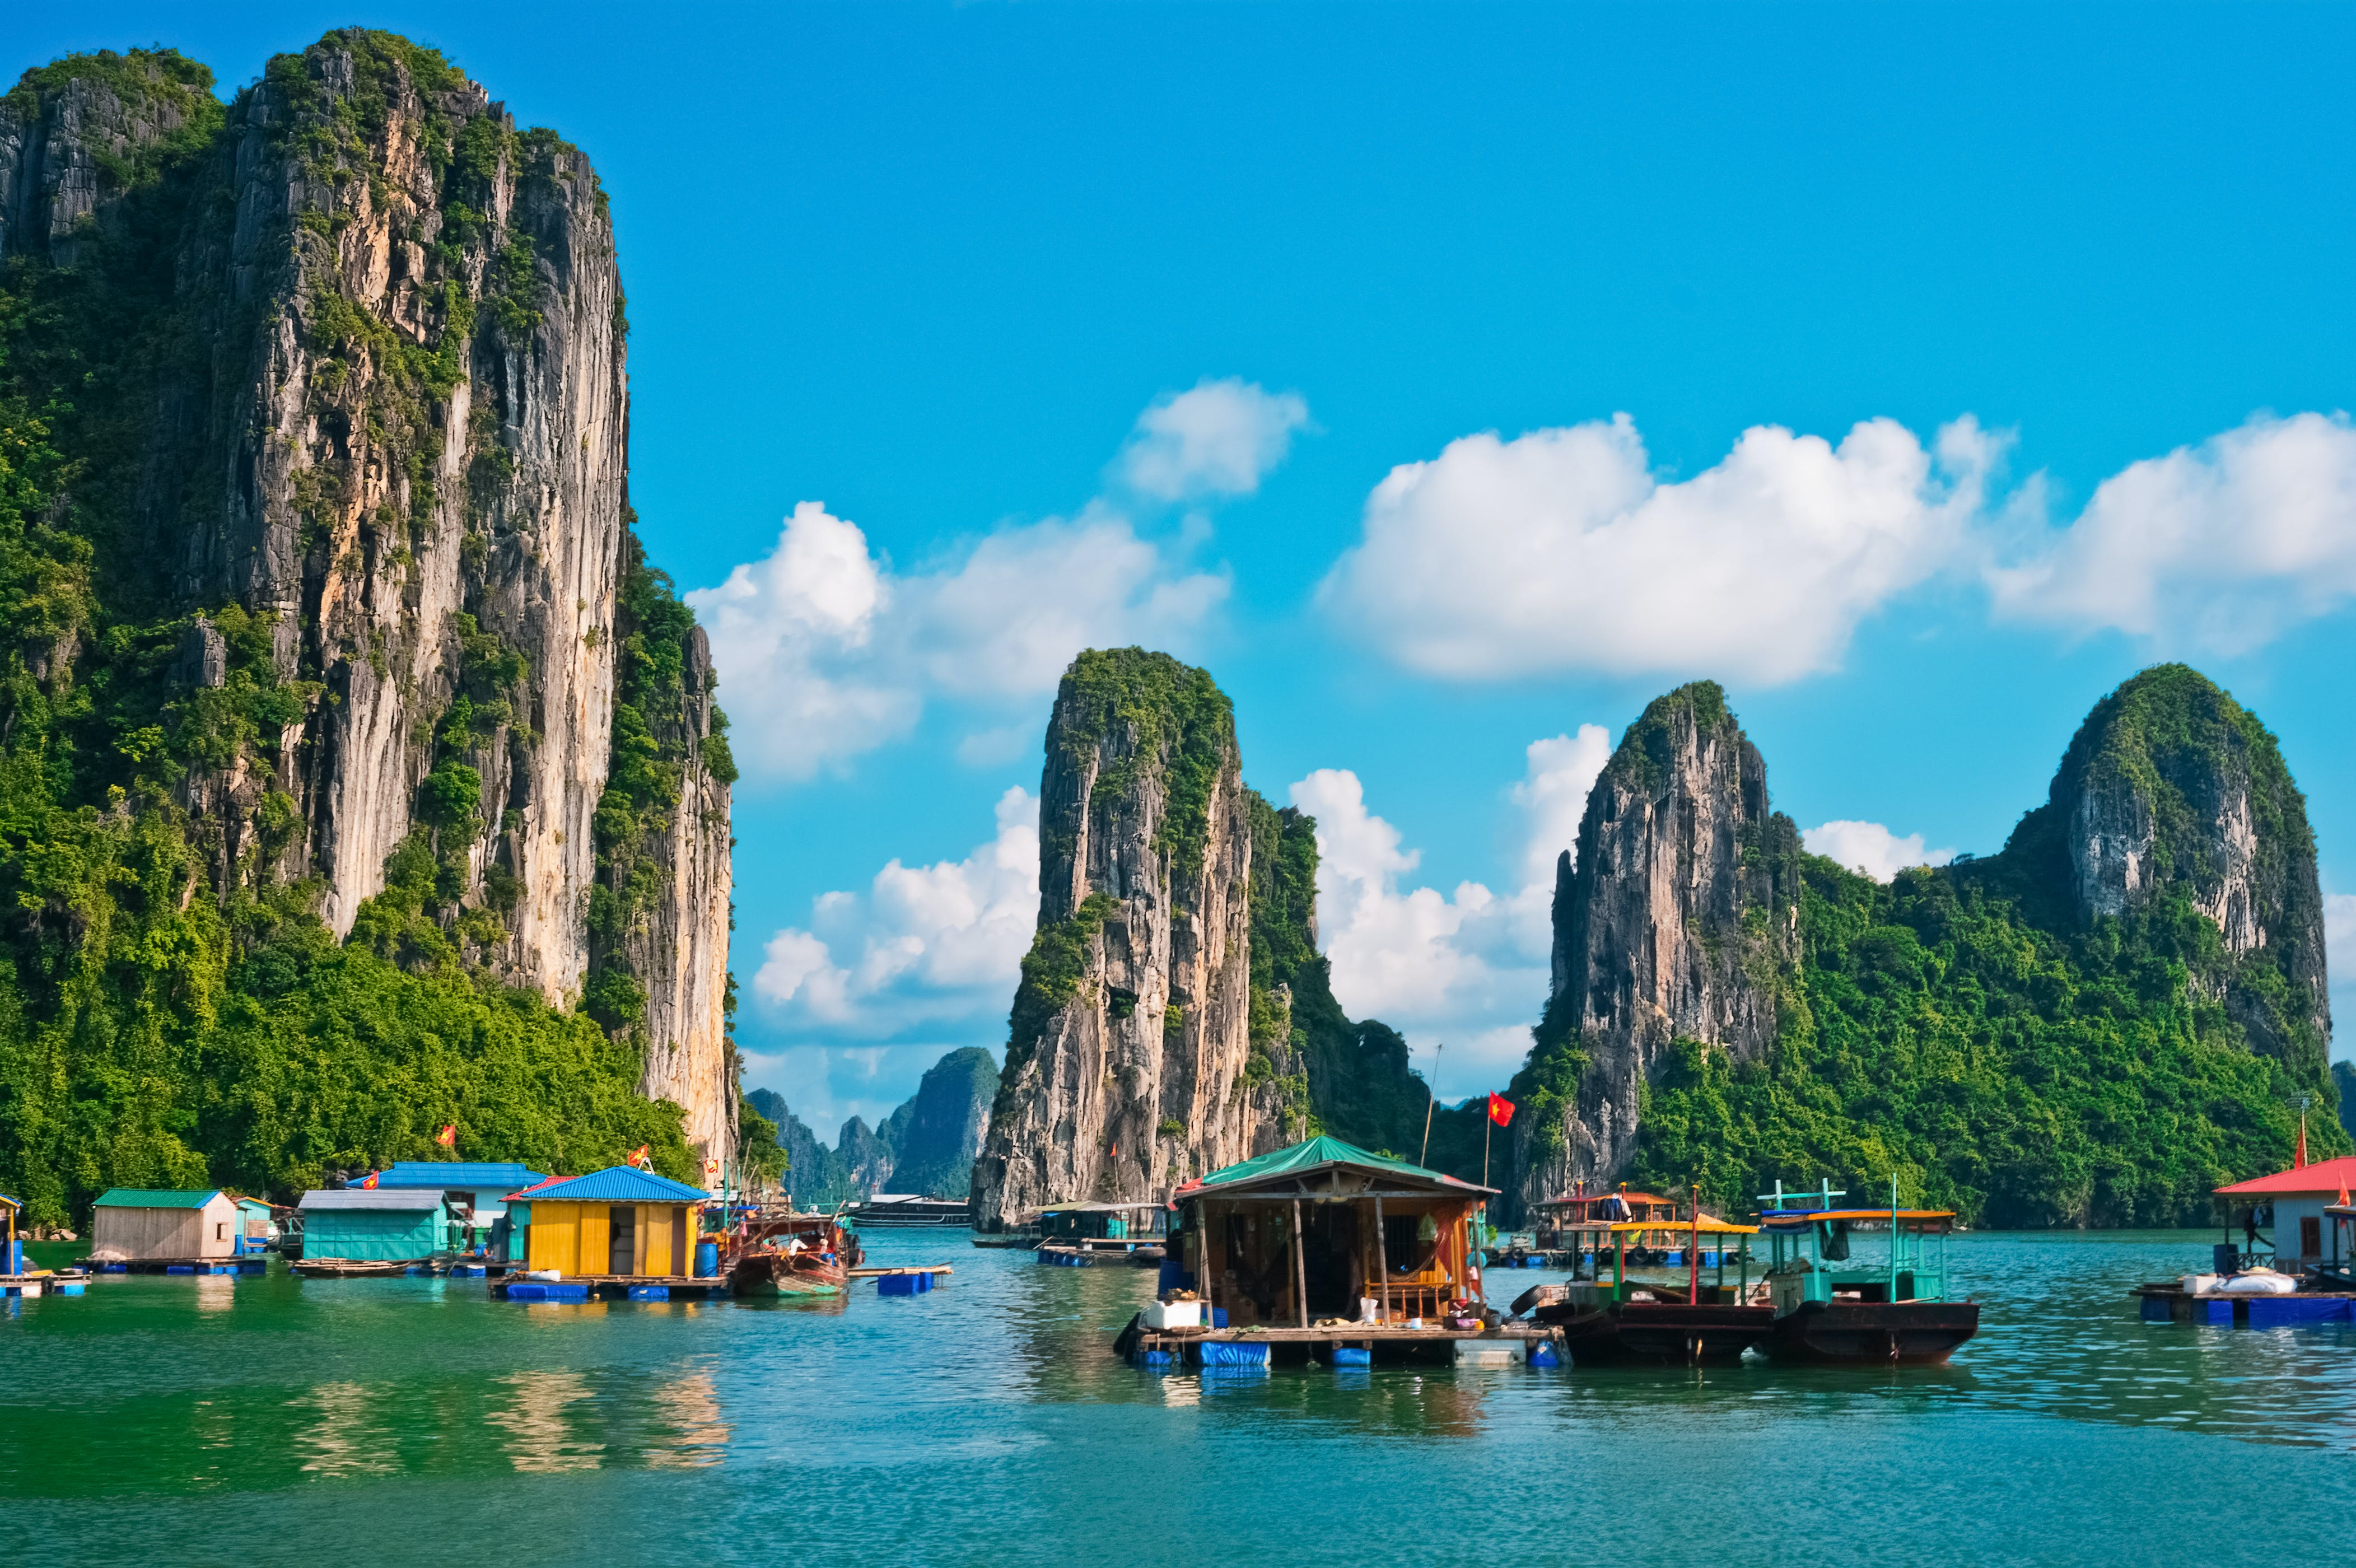 A Vietnam river cruise takes you from bustling cities such as Ho Chi Minh City and Hanoi to rural towns and rugged coastlines.